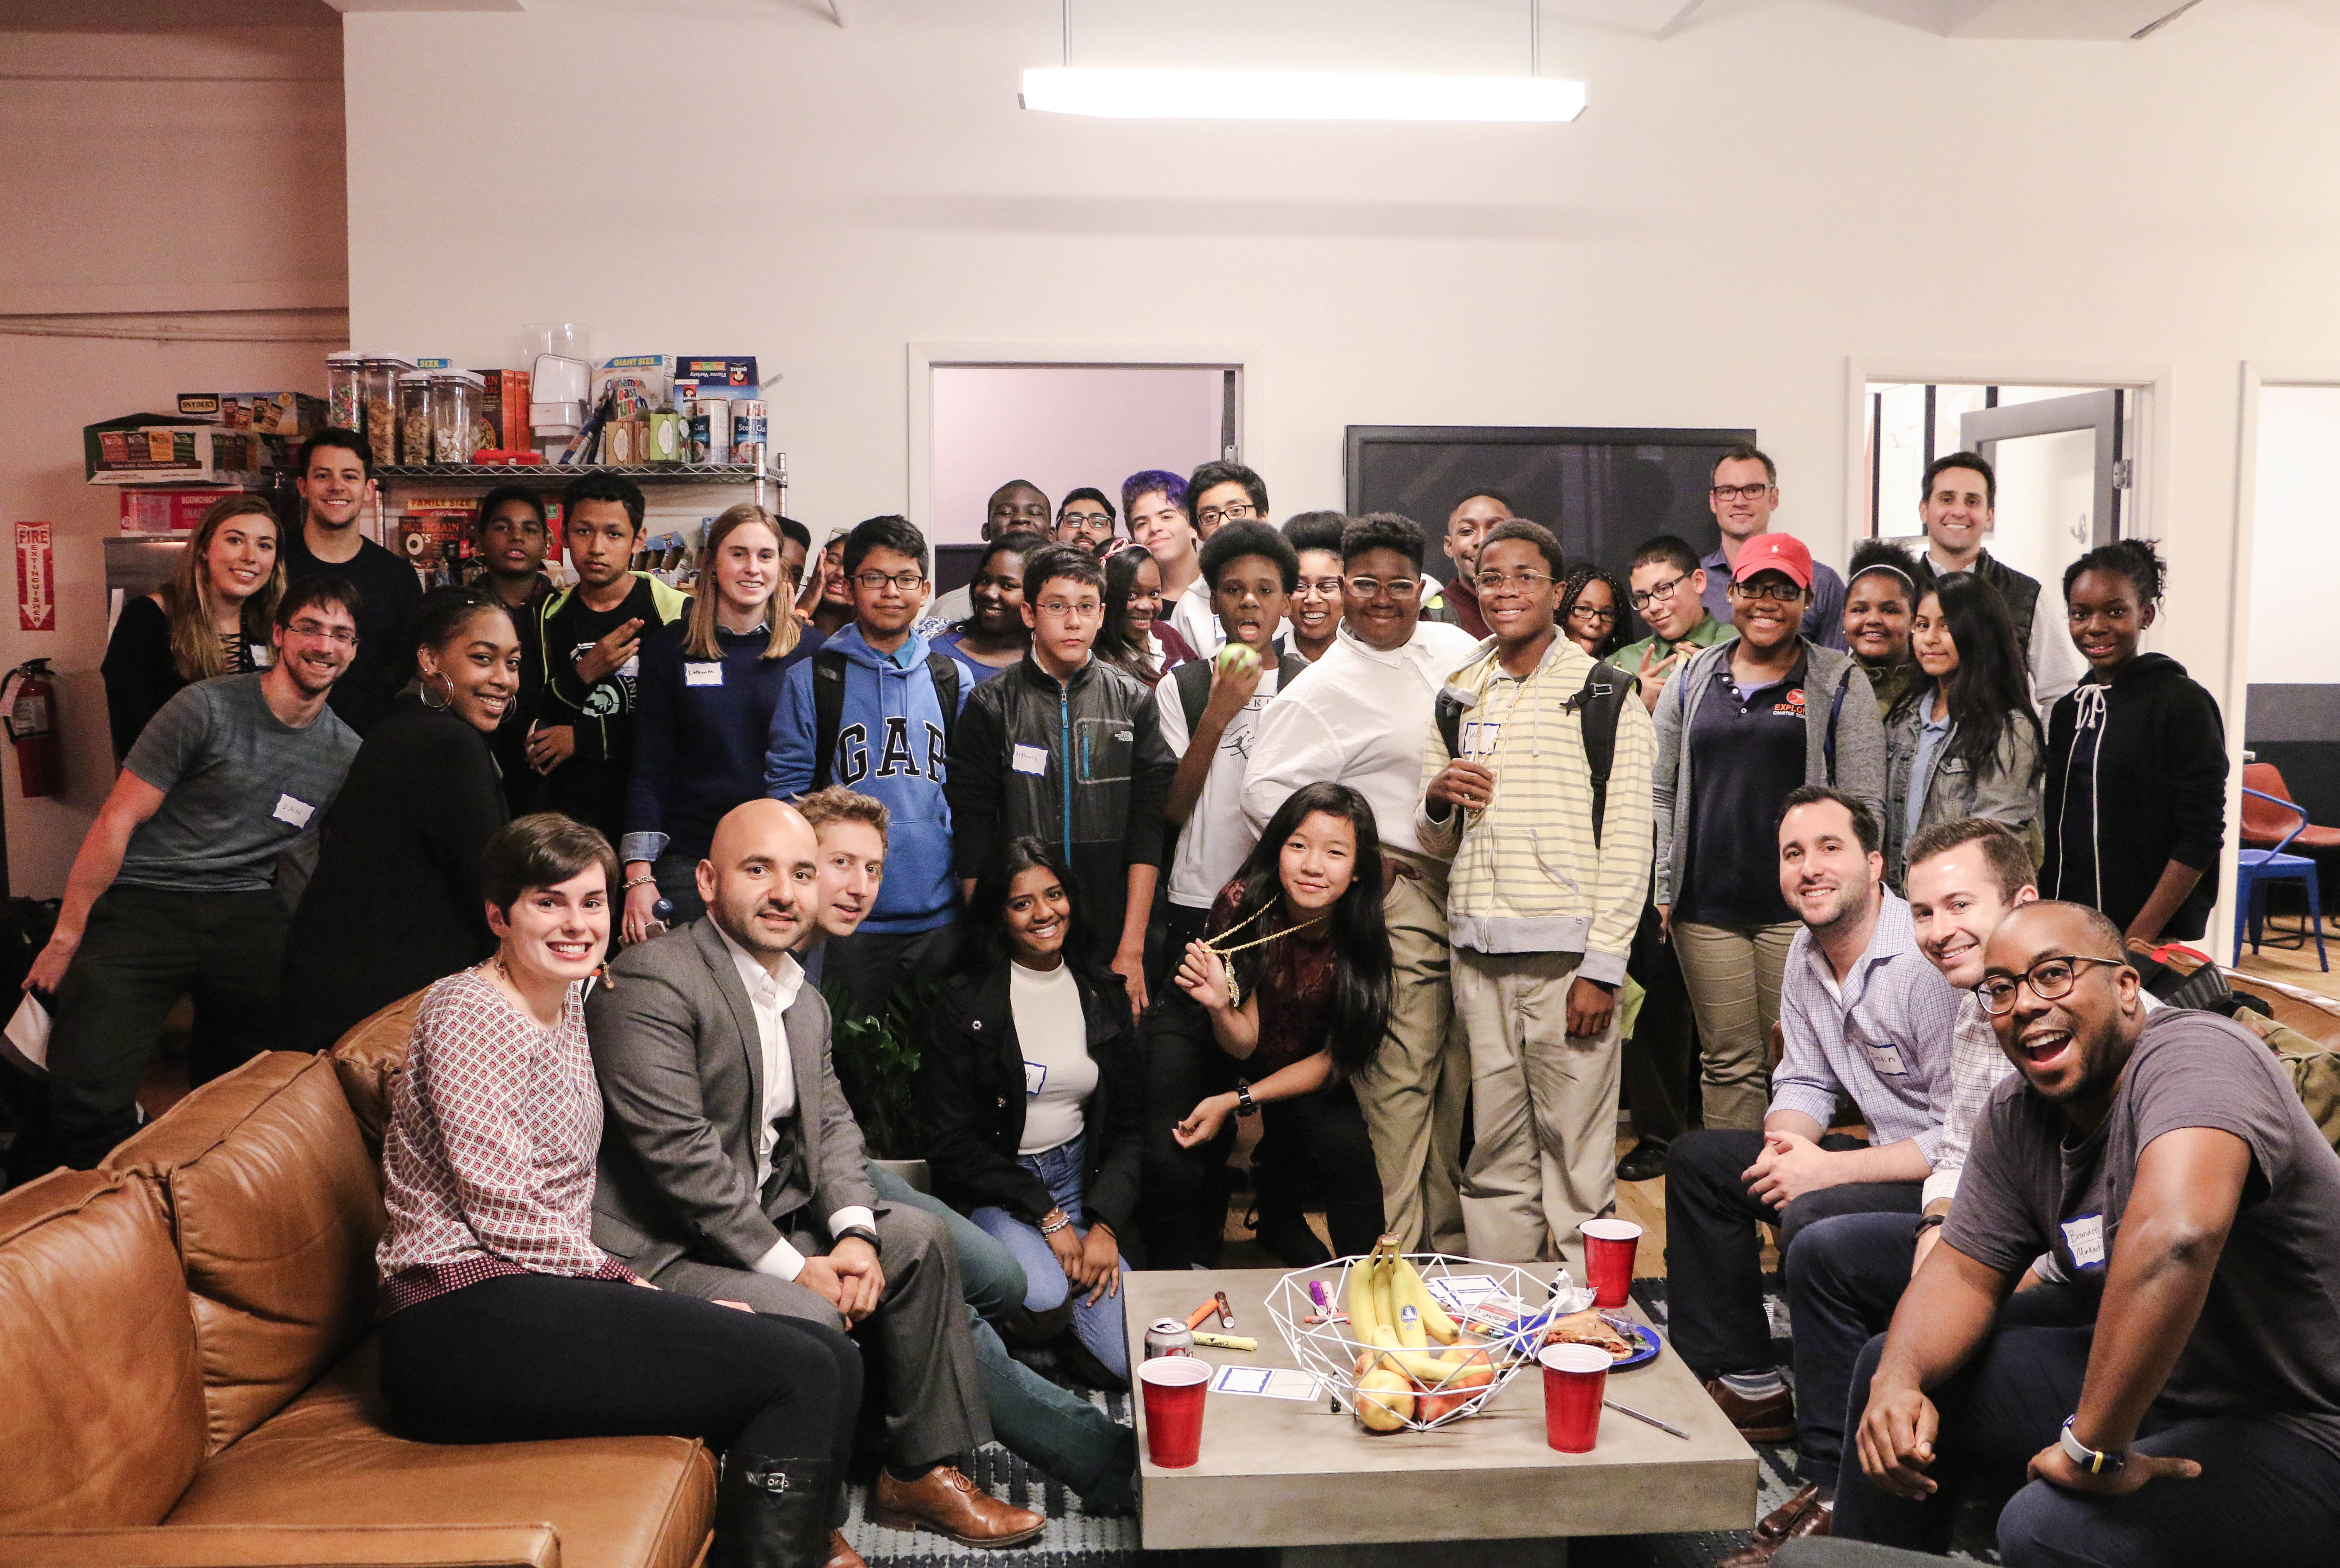 TheSquareFoot team with a fantastic group of future business leaders. Photo by Danielle Chan.